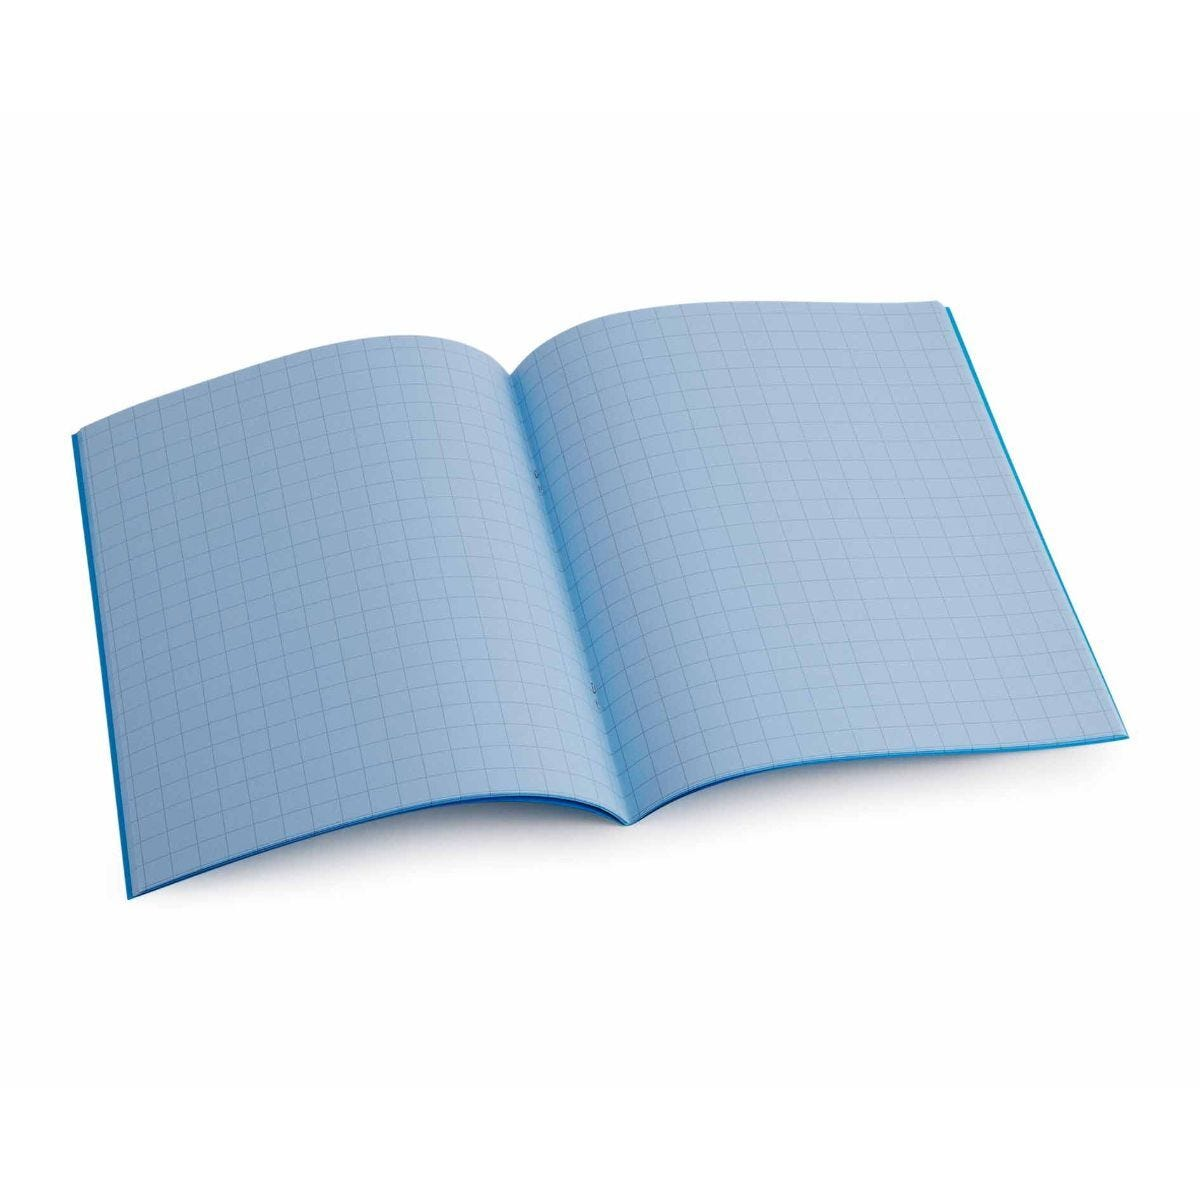 Tinted Exercise Book Standard 7x9 Squared 10mm Sky Blue